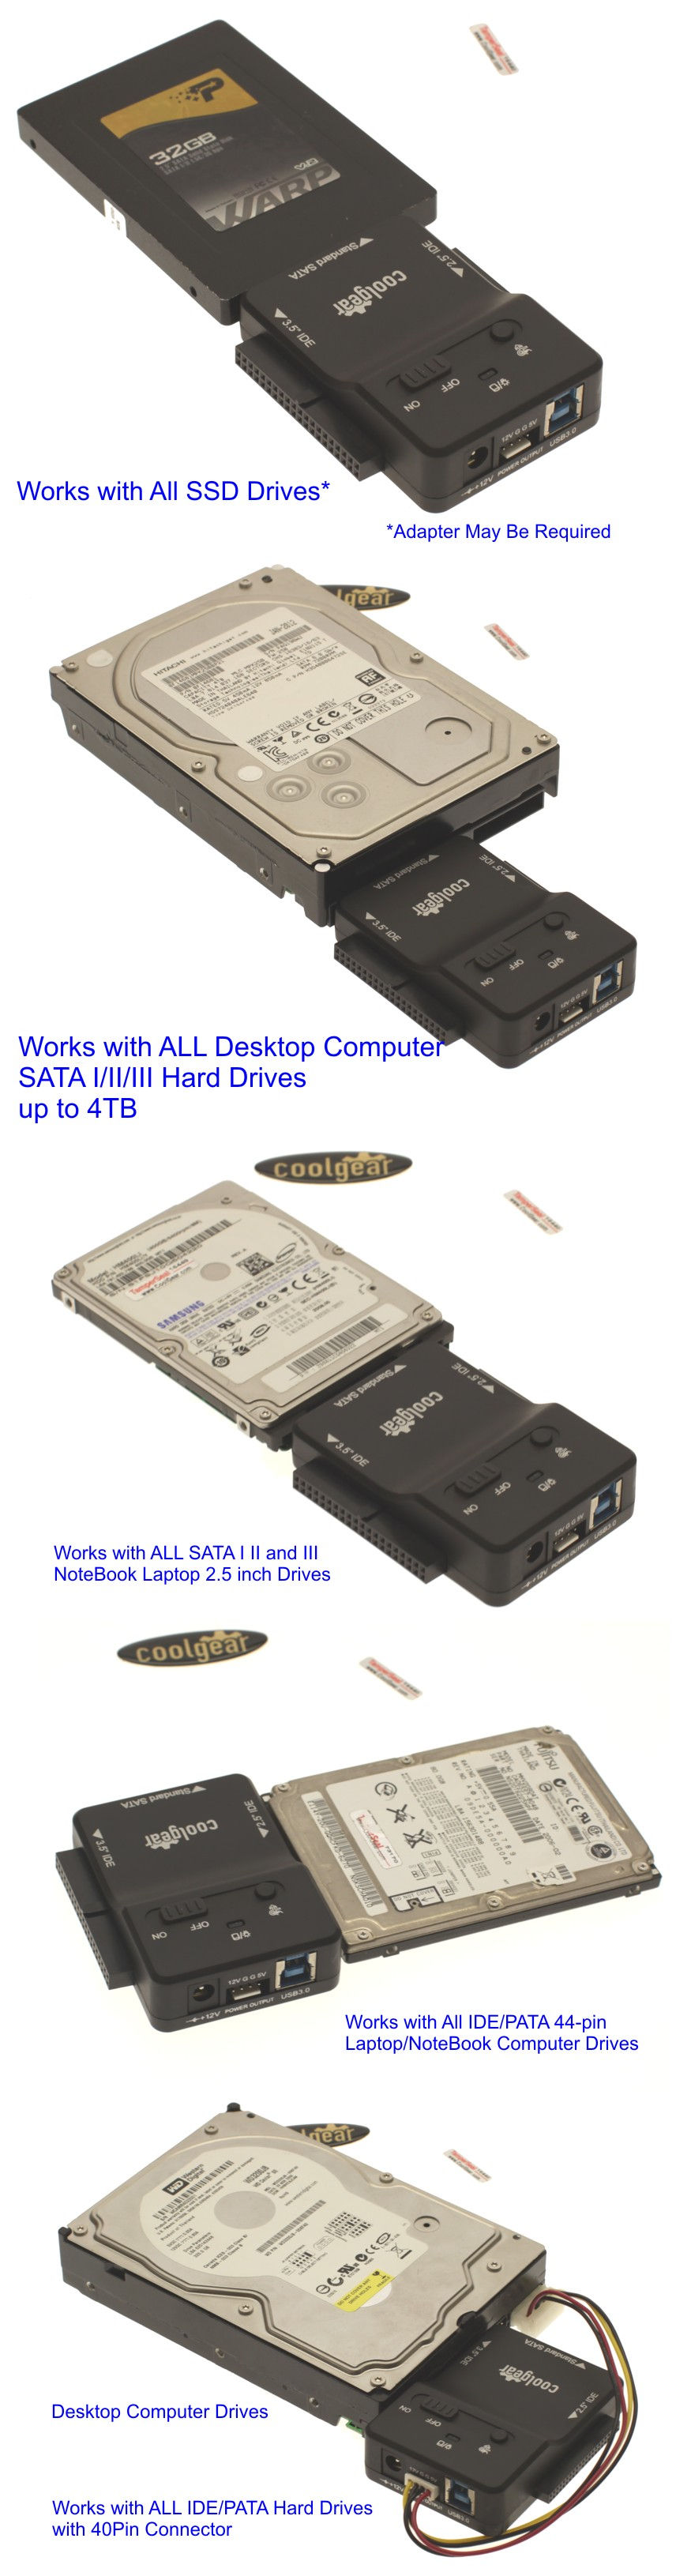 USB 3.0 to PATA/ IDE and SATA Hard Drive Adapter Universal 2.5/3.5 inch Drives Including all Laptop and SSD drives - Image B